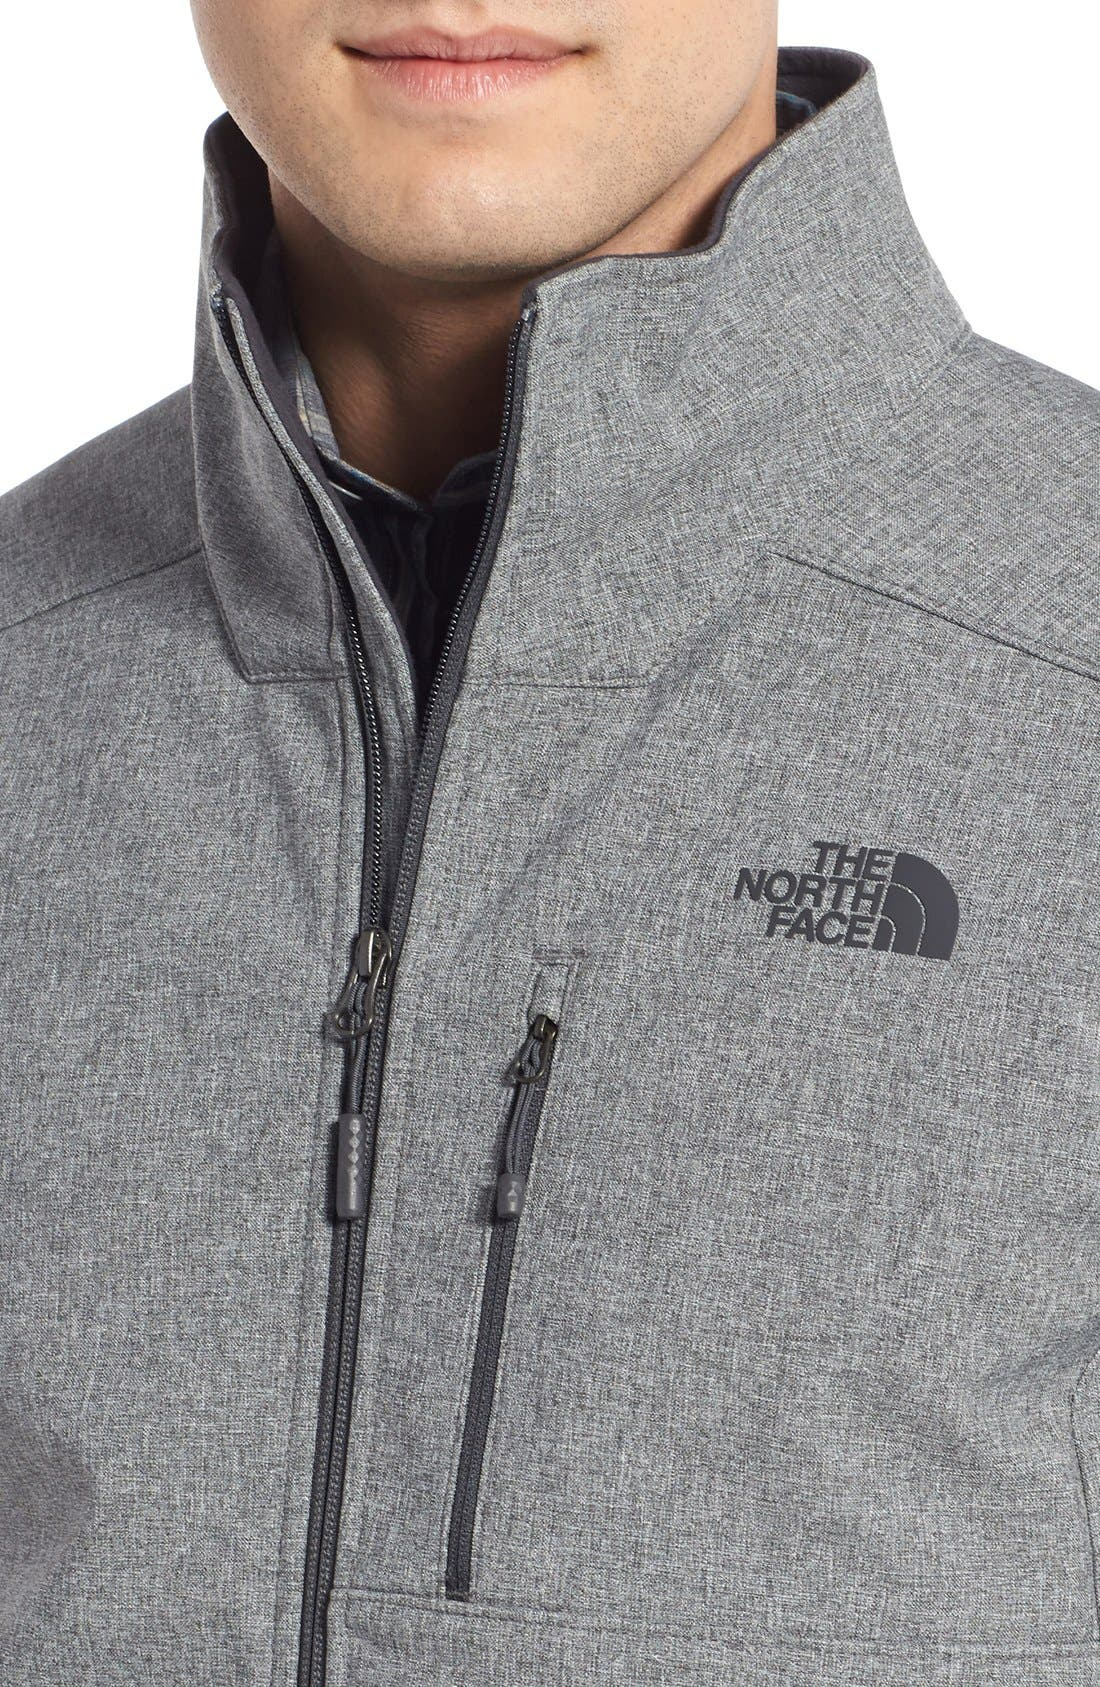 'Apex Bionic 2' Windproof & Water Resistant Soft Shell Jacket,                             Alternate thumbnail 4, color,                             Tnf Medium Grey Heather